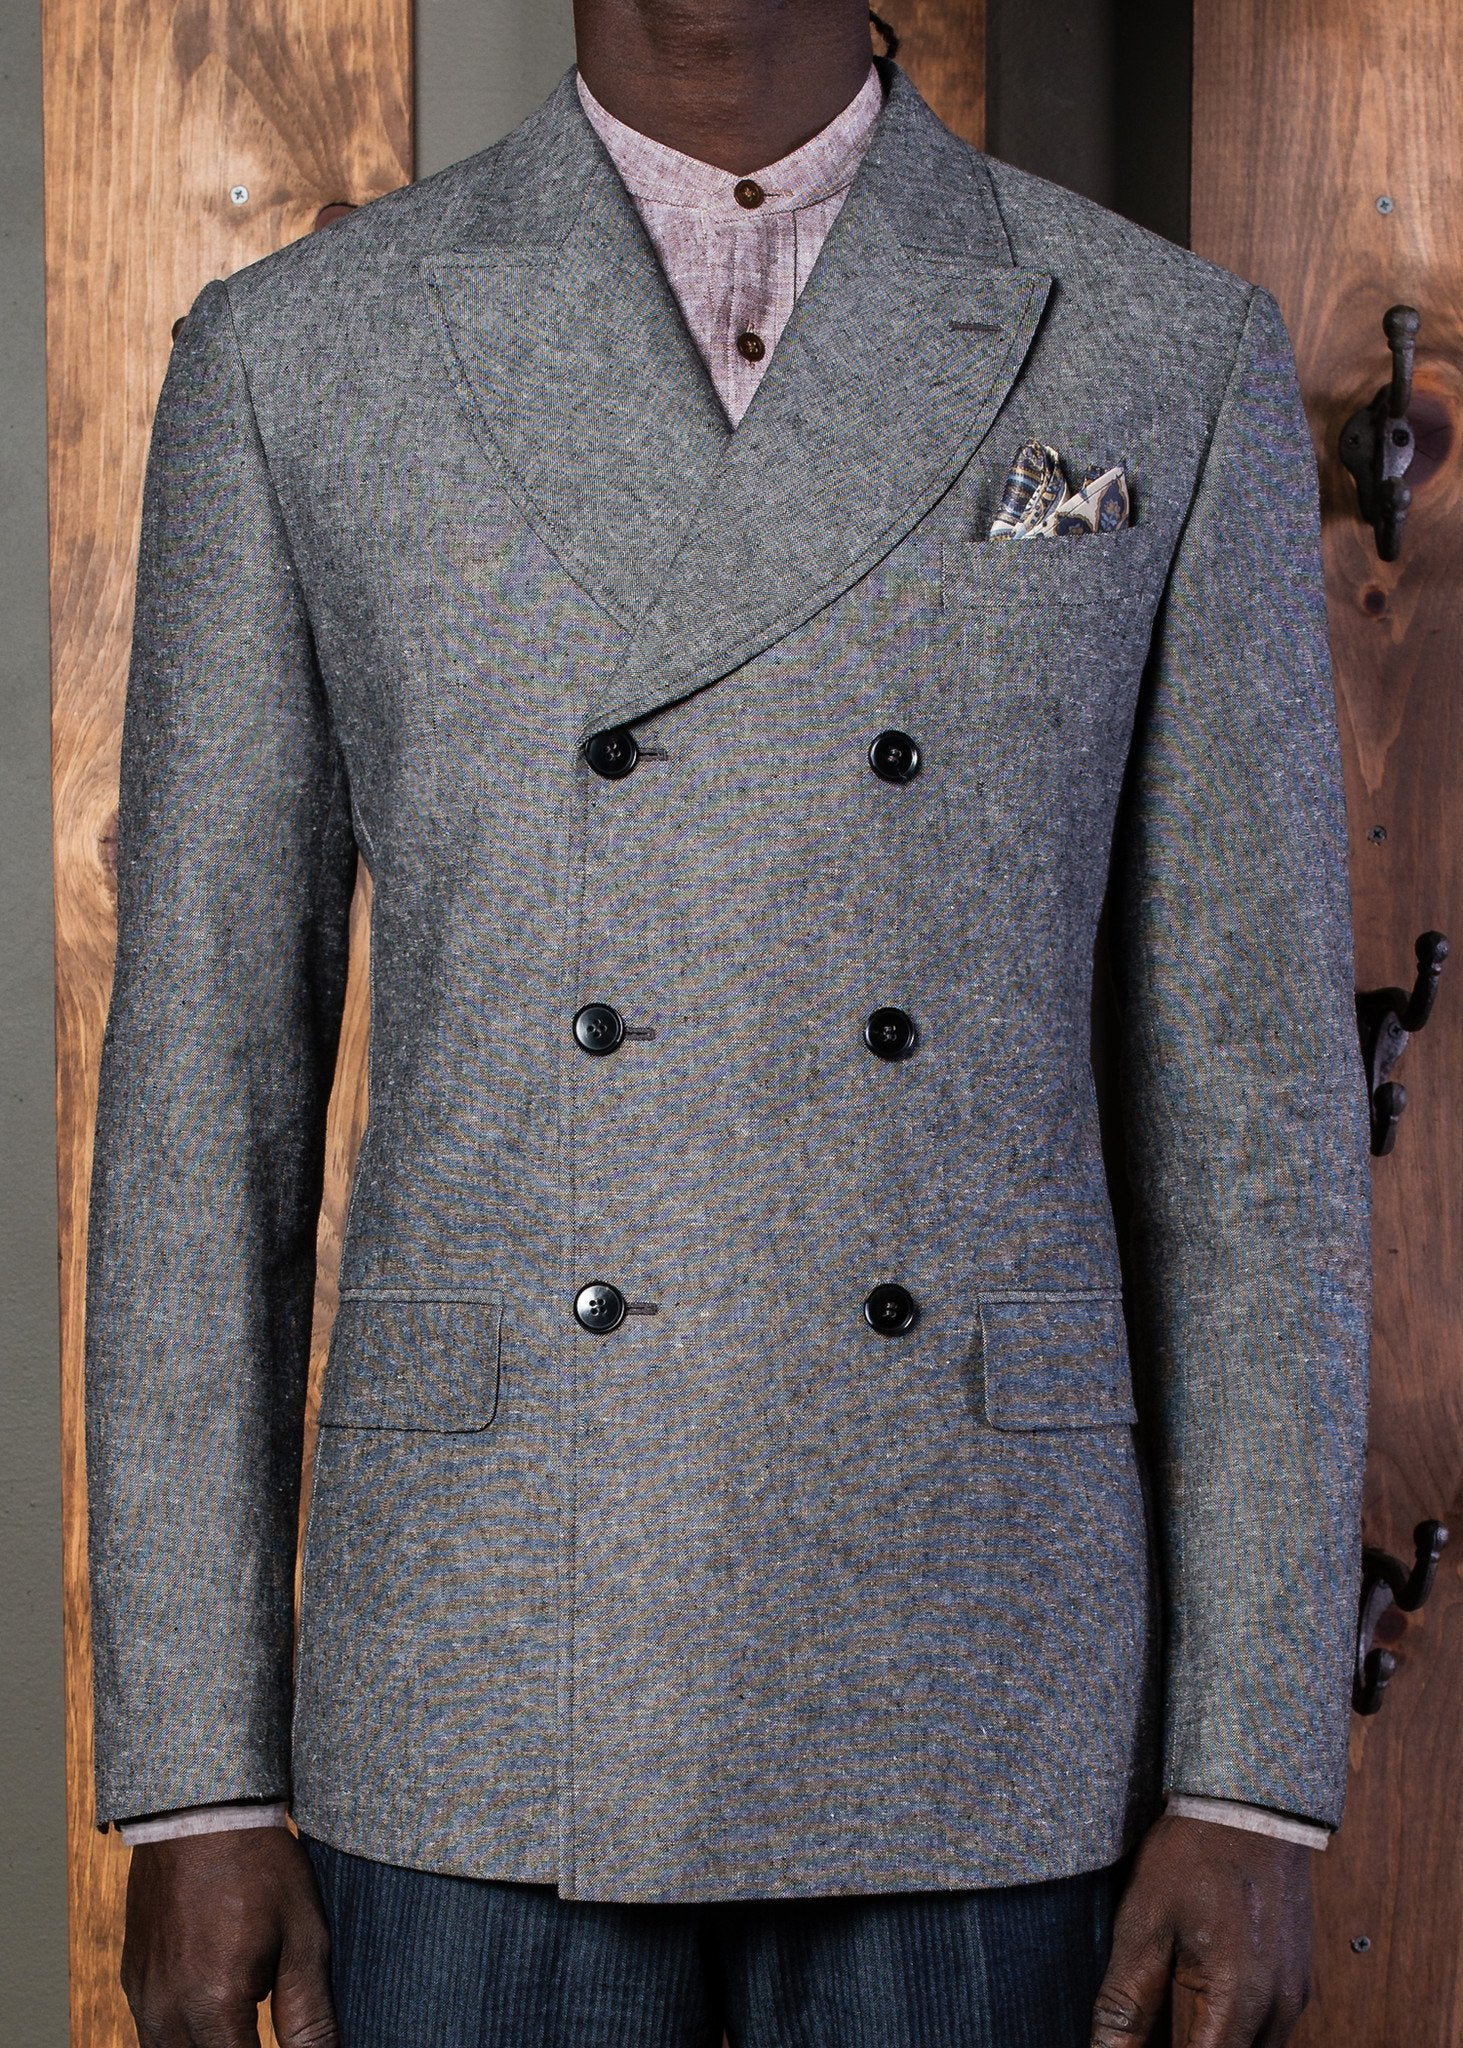 Curved Peak Lapel 3x6 Double Breasted Jacket